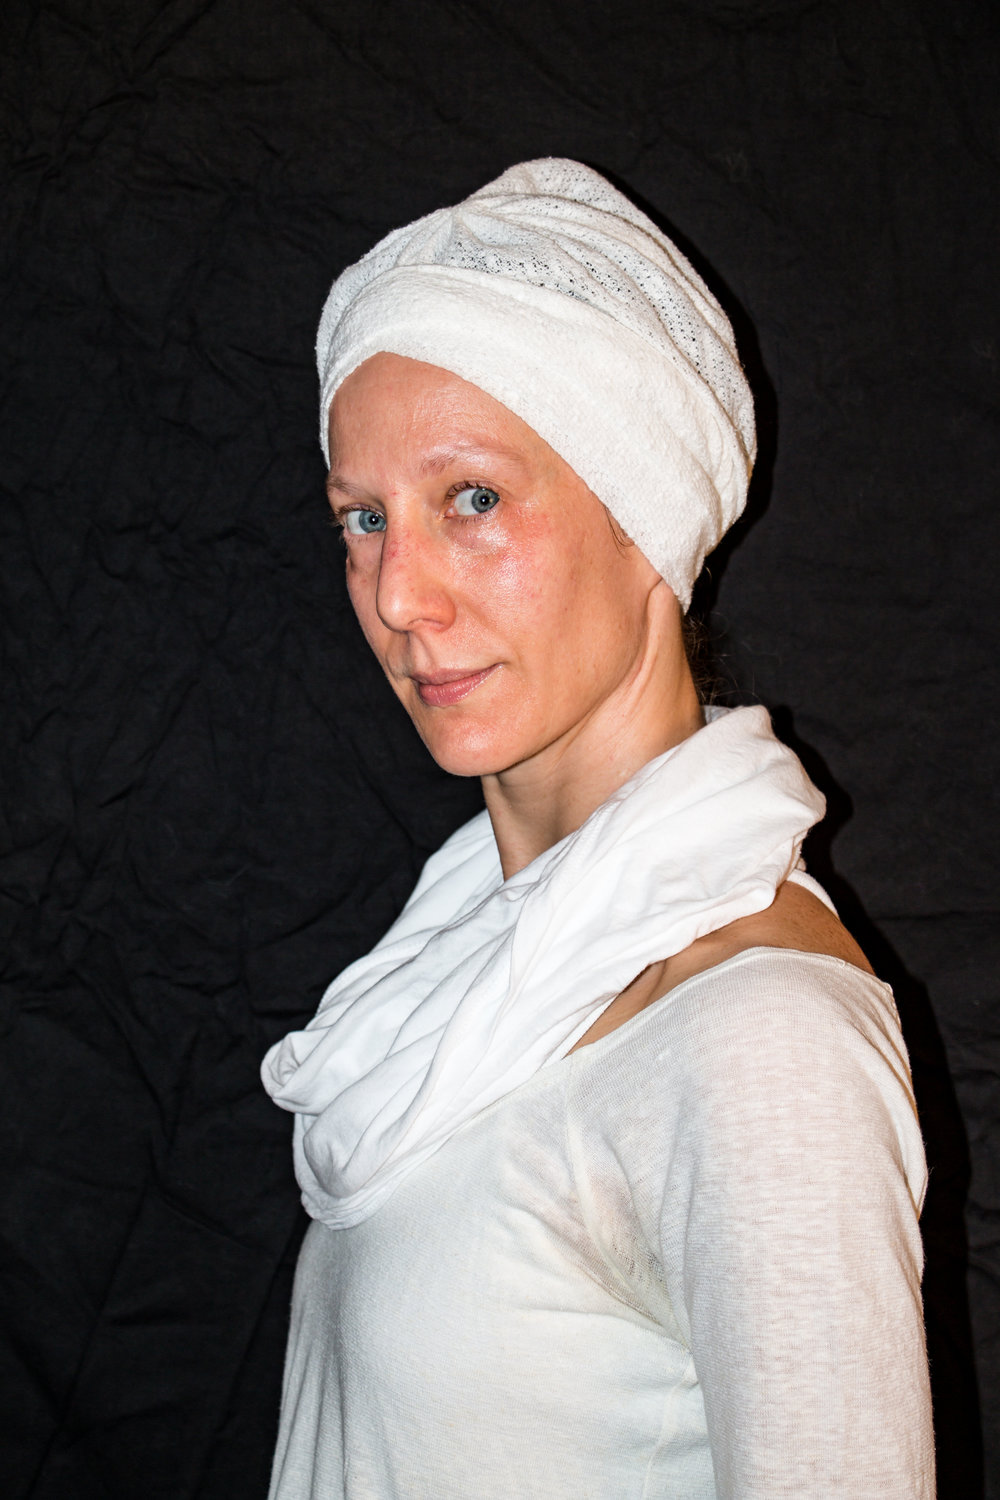 Andrea yoga instructor Anchorage kundalini